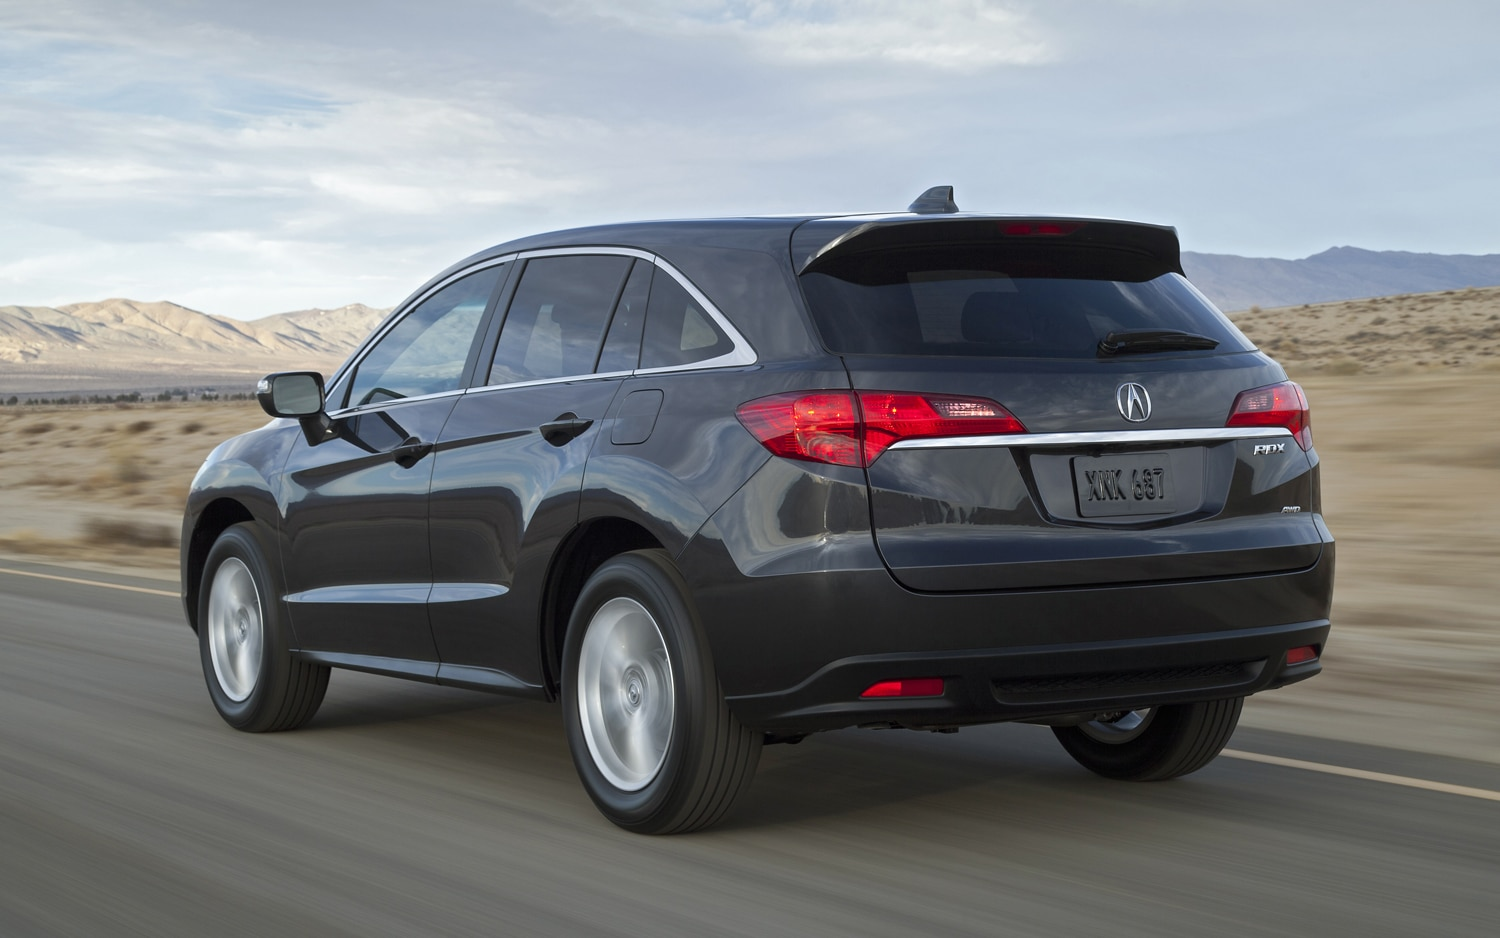 First Drive: 2013 Acura RDX